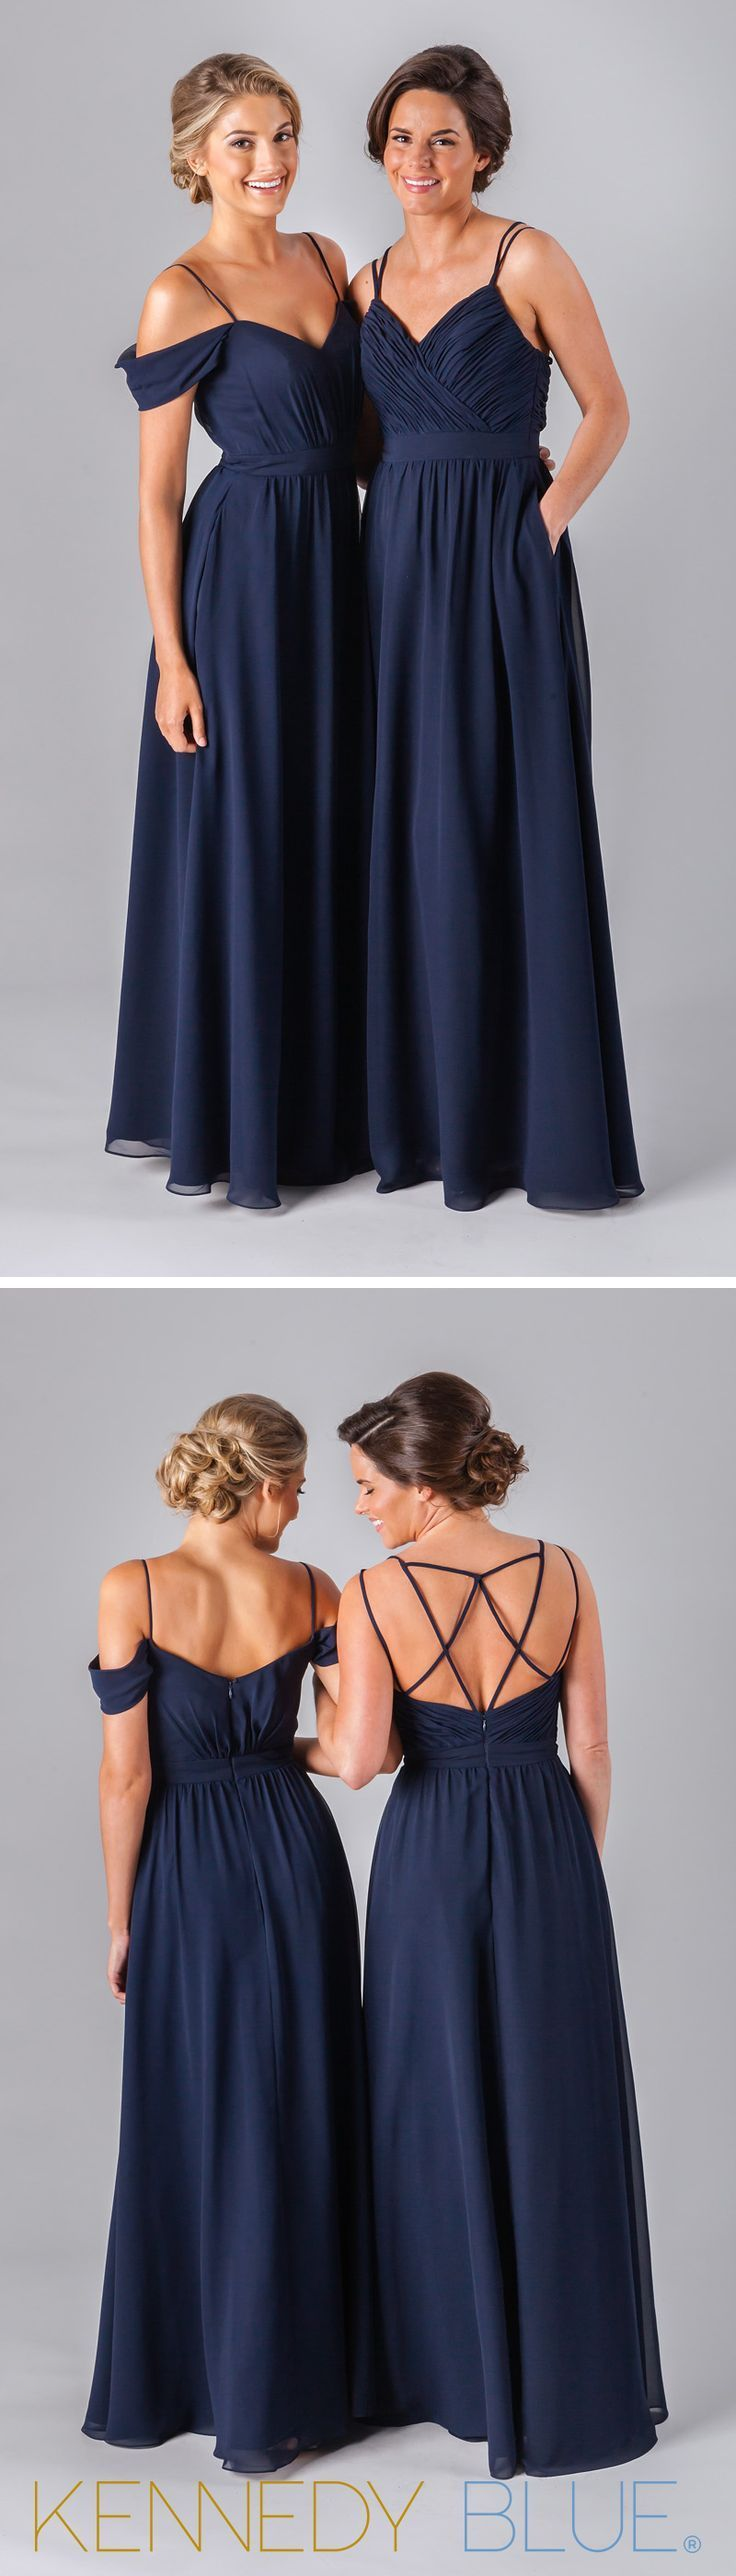 Navy blue dress for spring wedding  Mix and match long chiffon bridesmaid dresses in navy blue